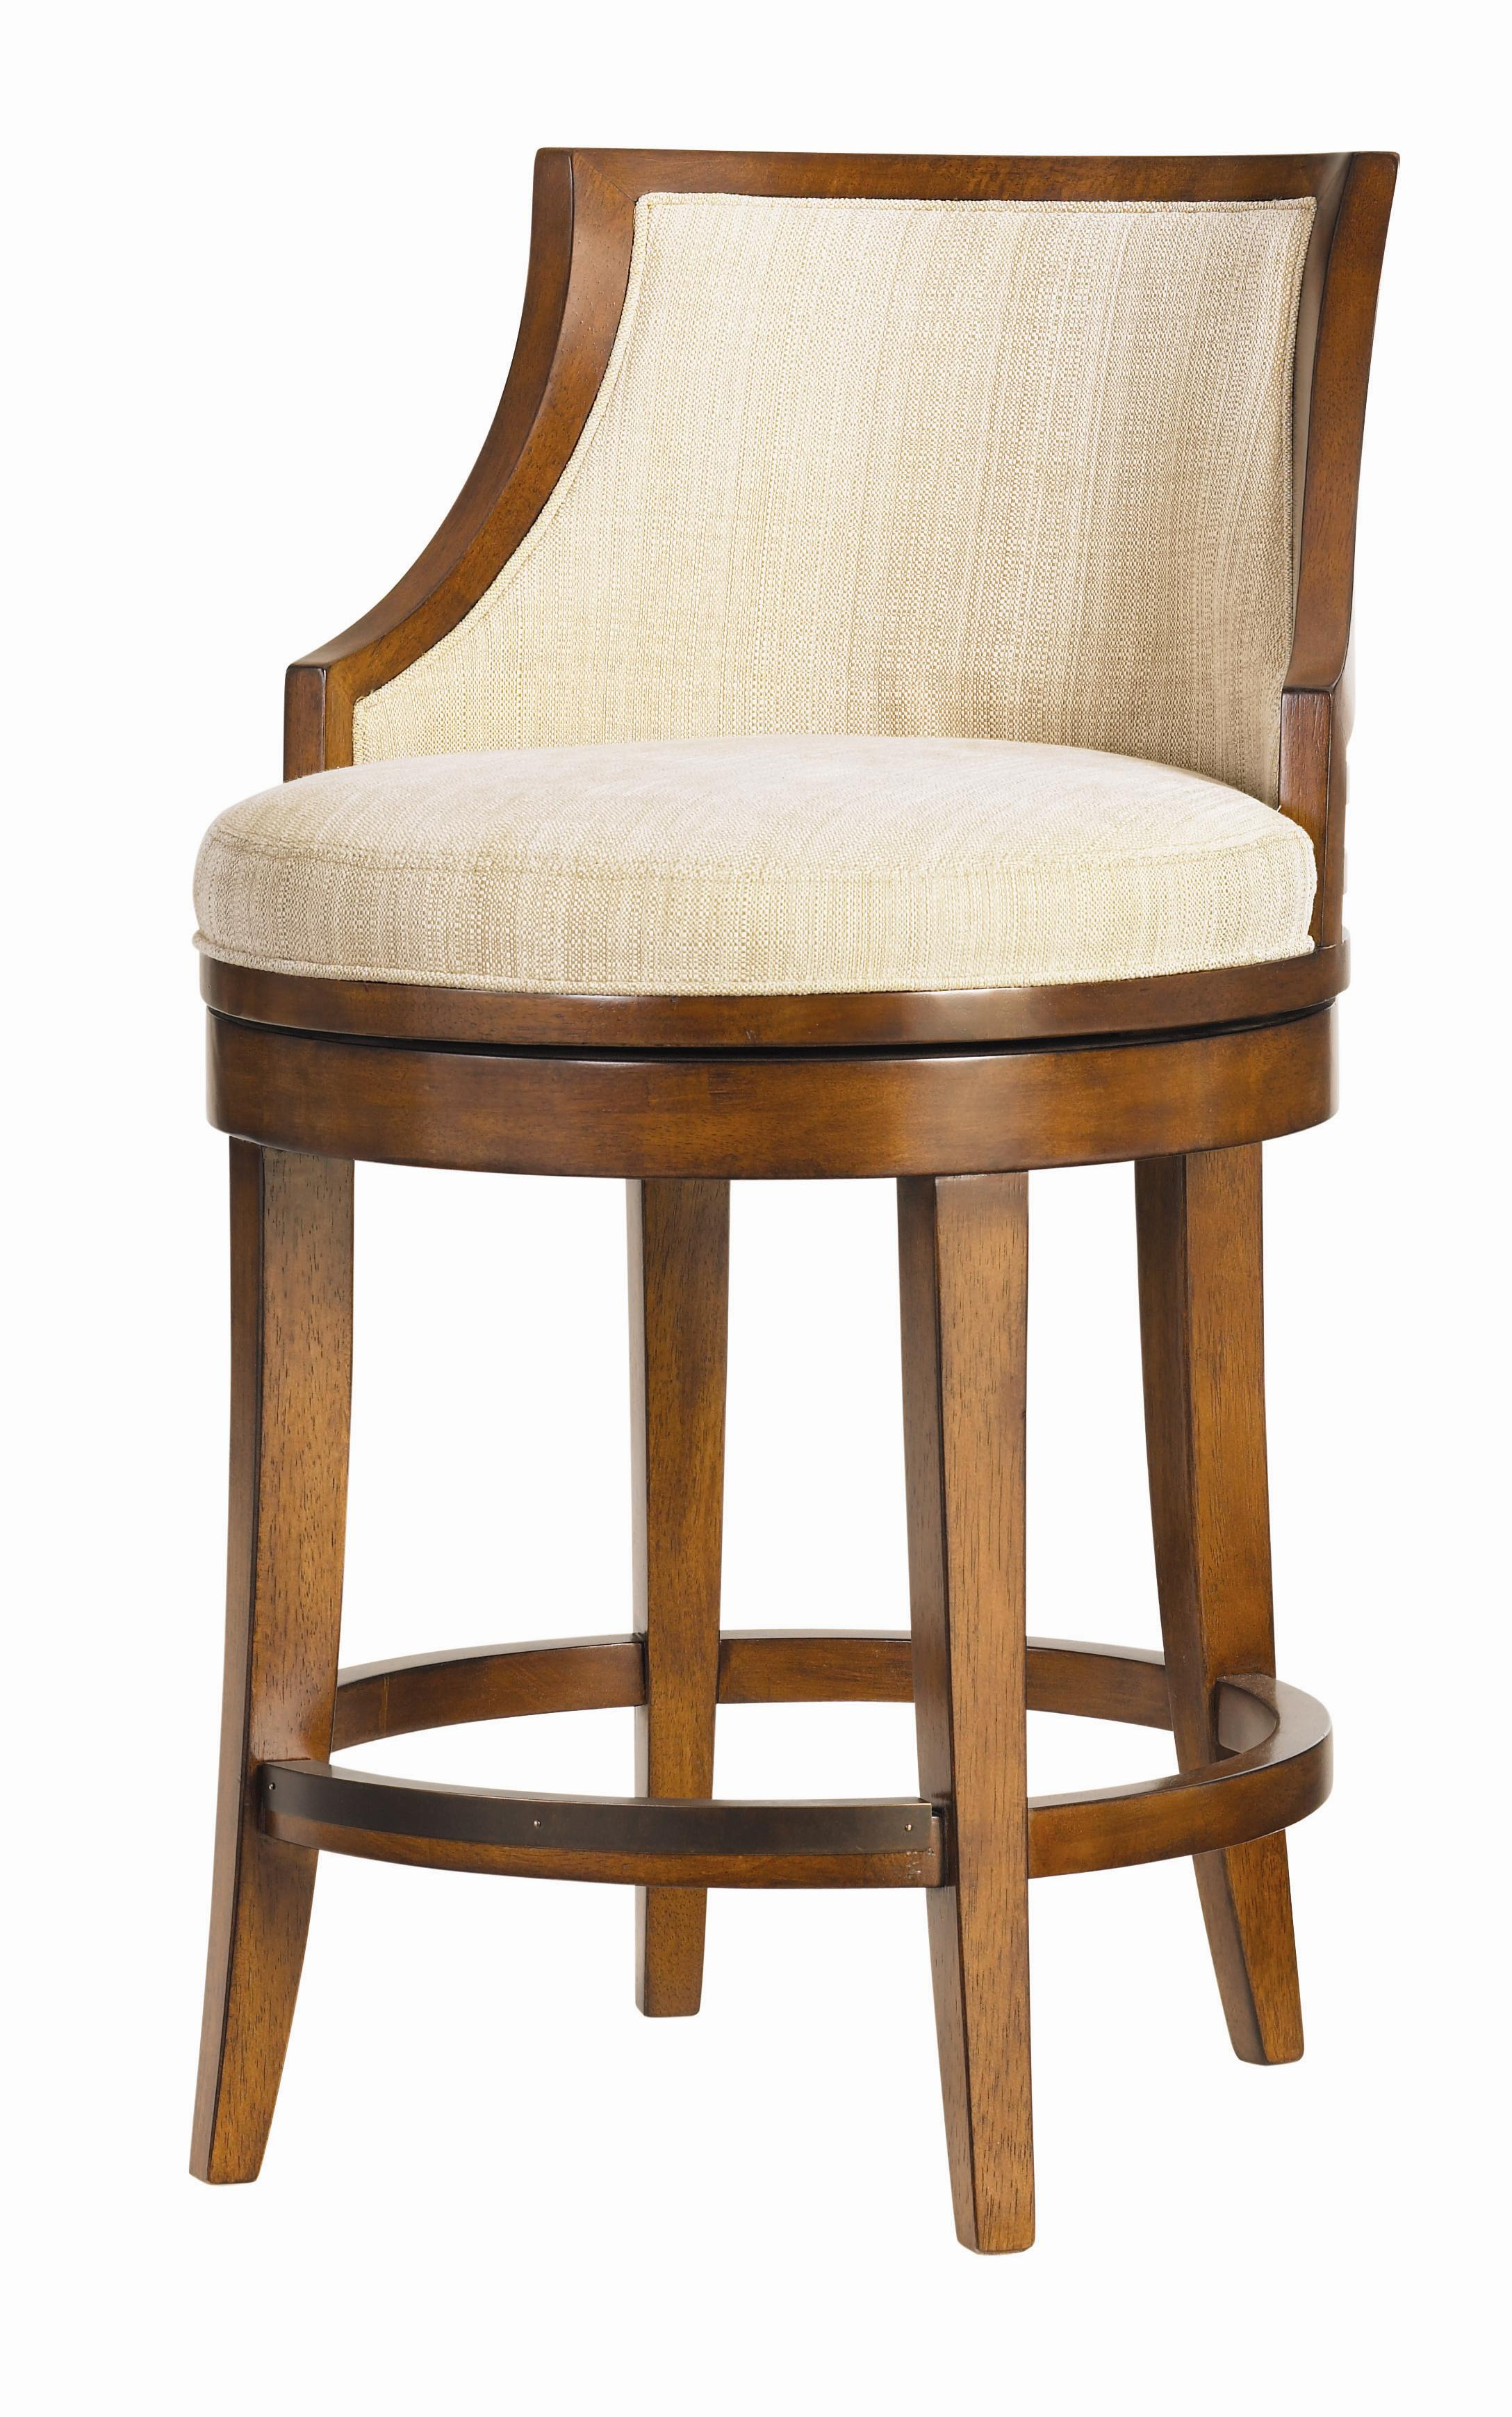 Ocean Club <b>Quick Ship</b> Cabana Counter Stool by Tommy Bahama Home at Baer's Furniture